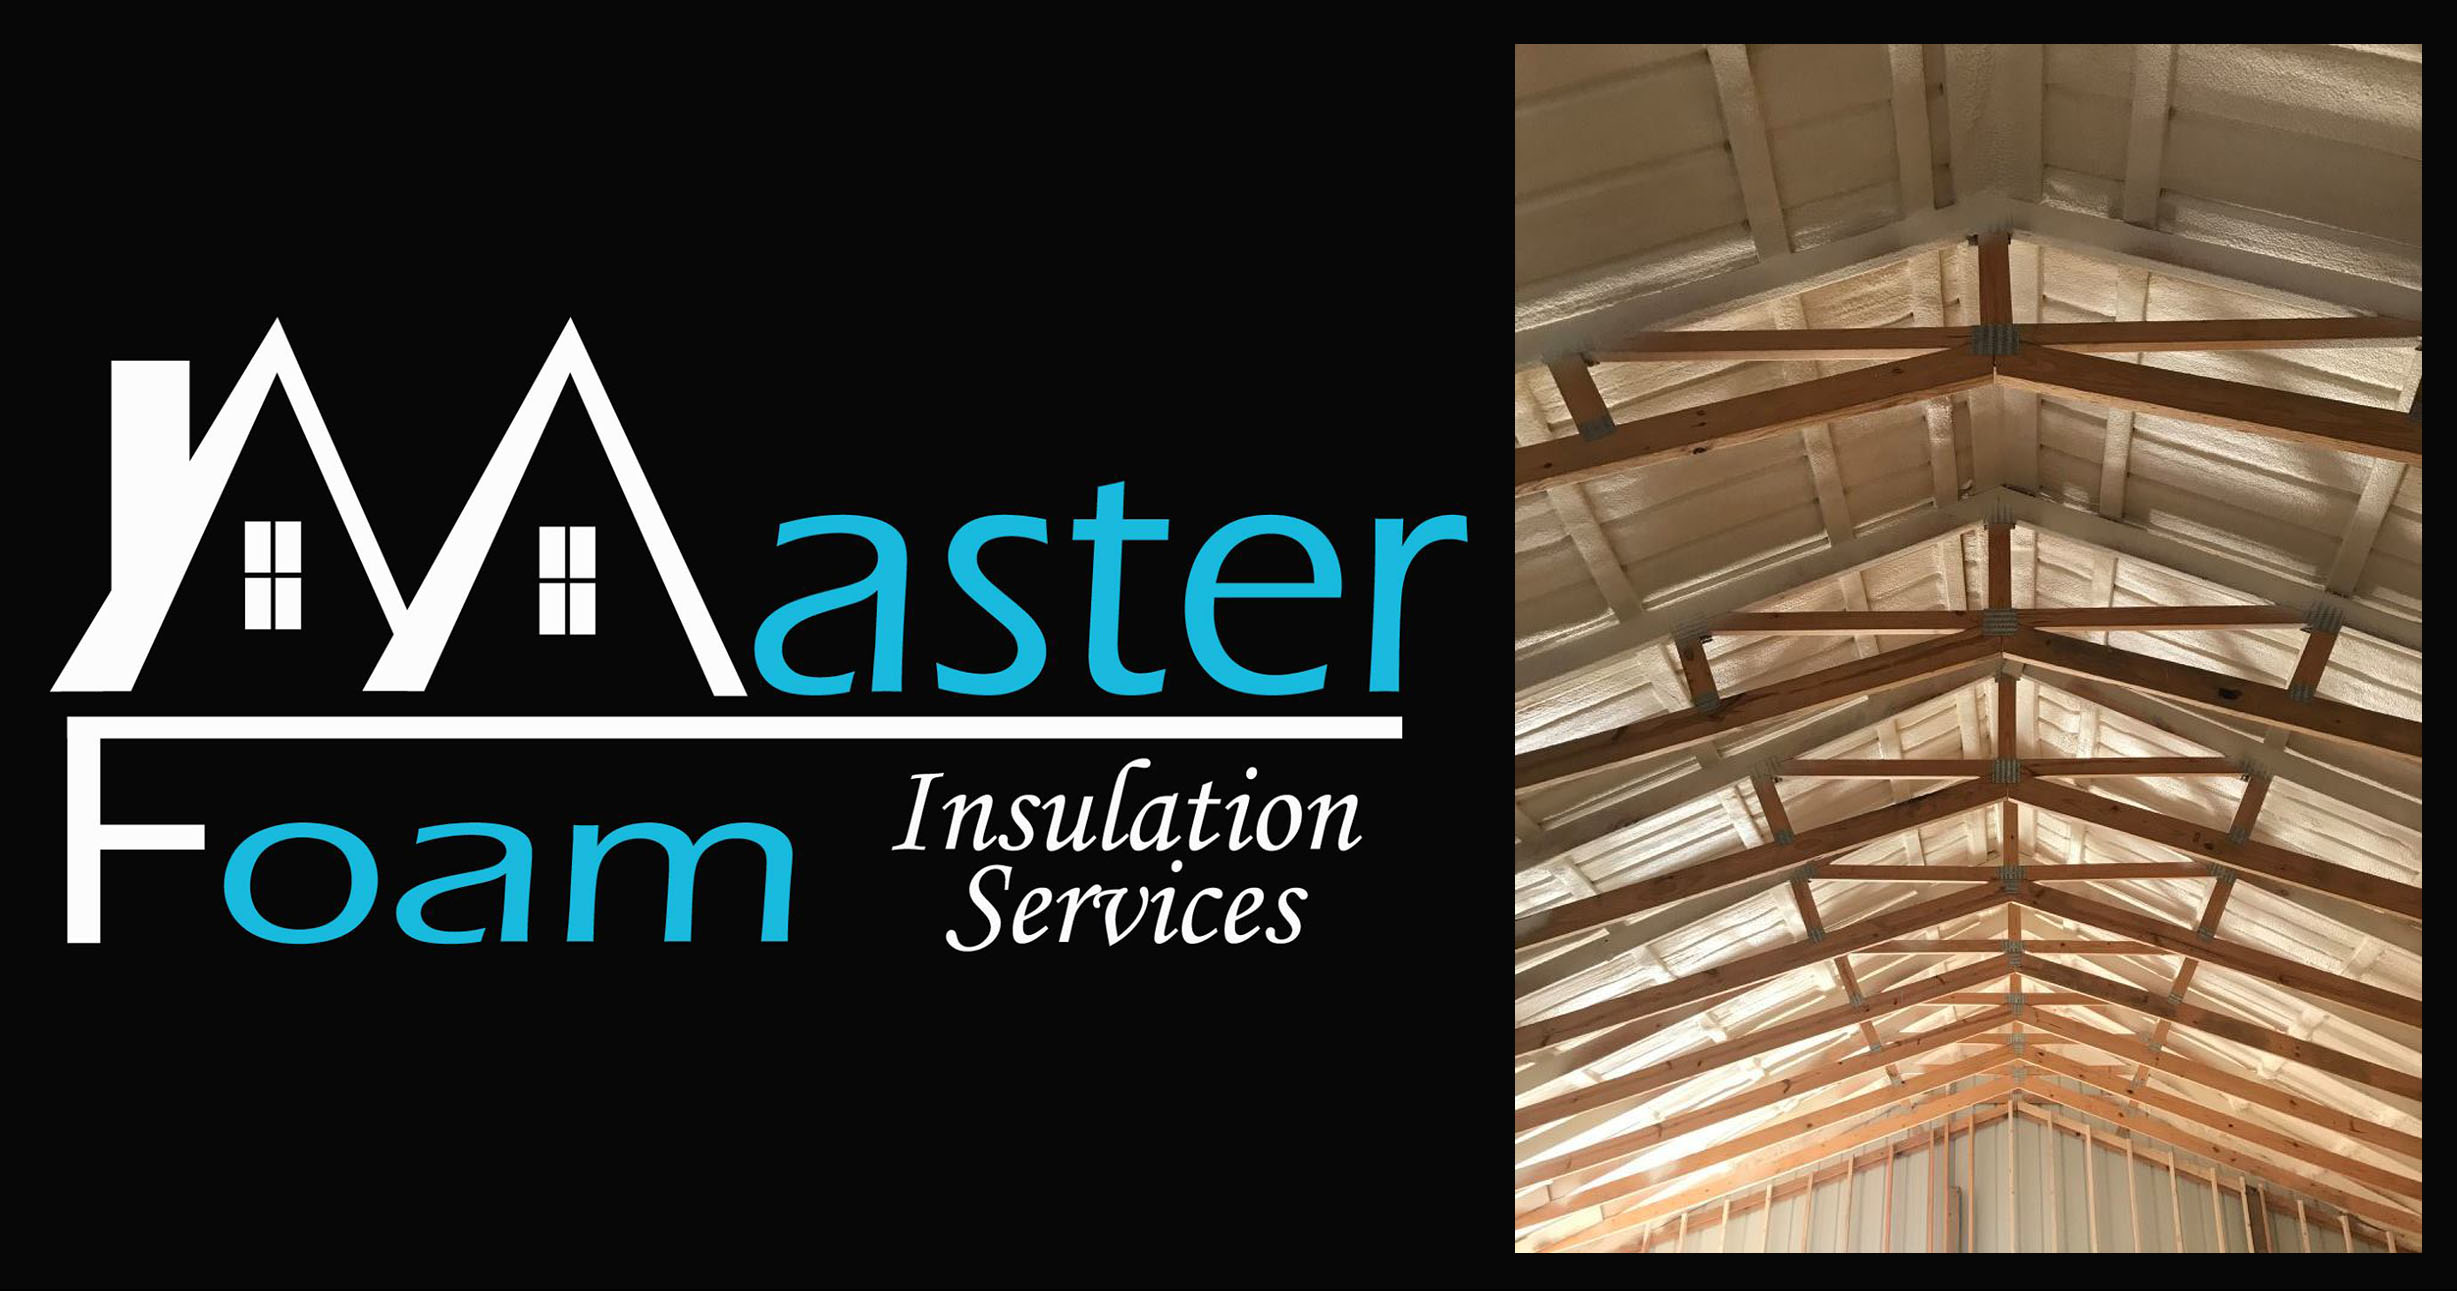 SPF - Spray Foam Insulation - Open and Closed Cell